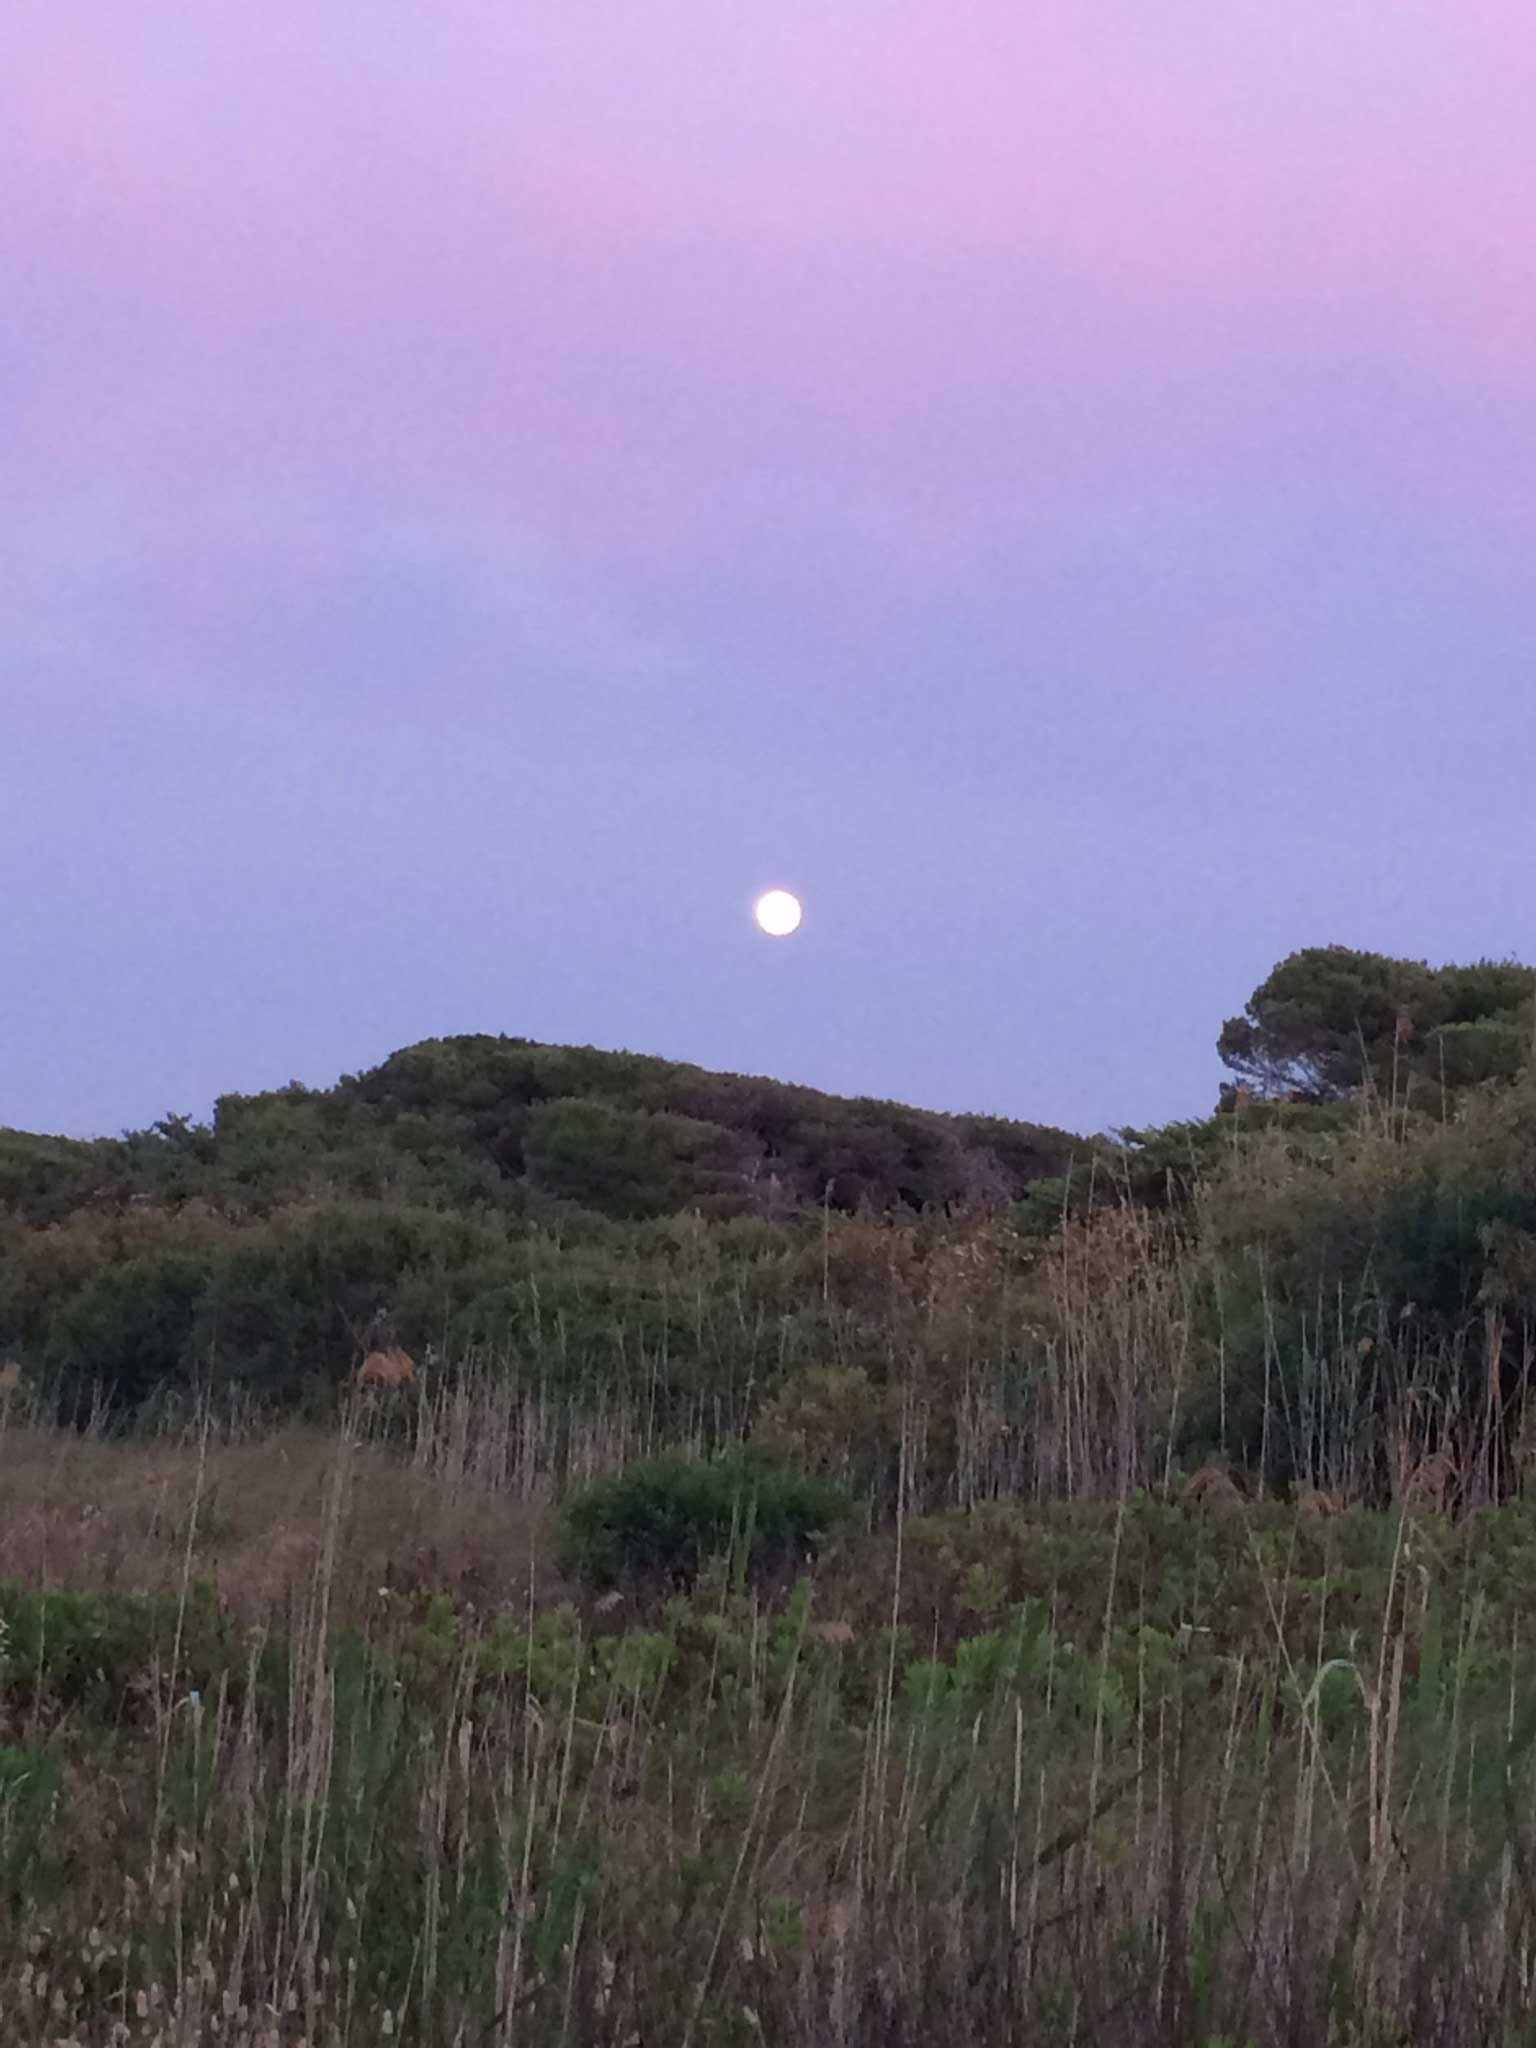 Moon over the dunes in a lilac sky